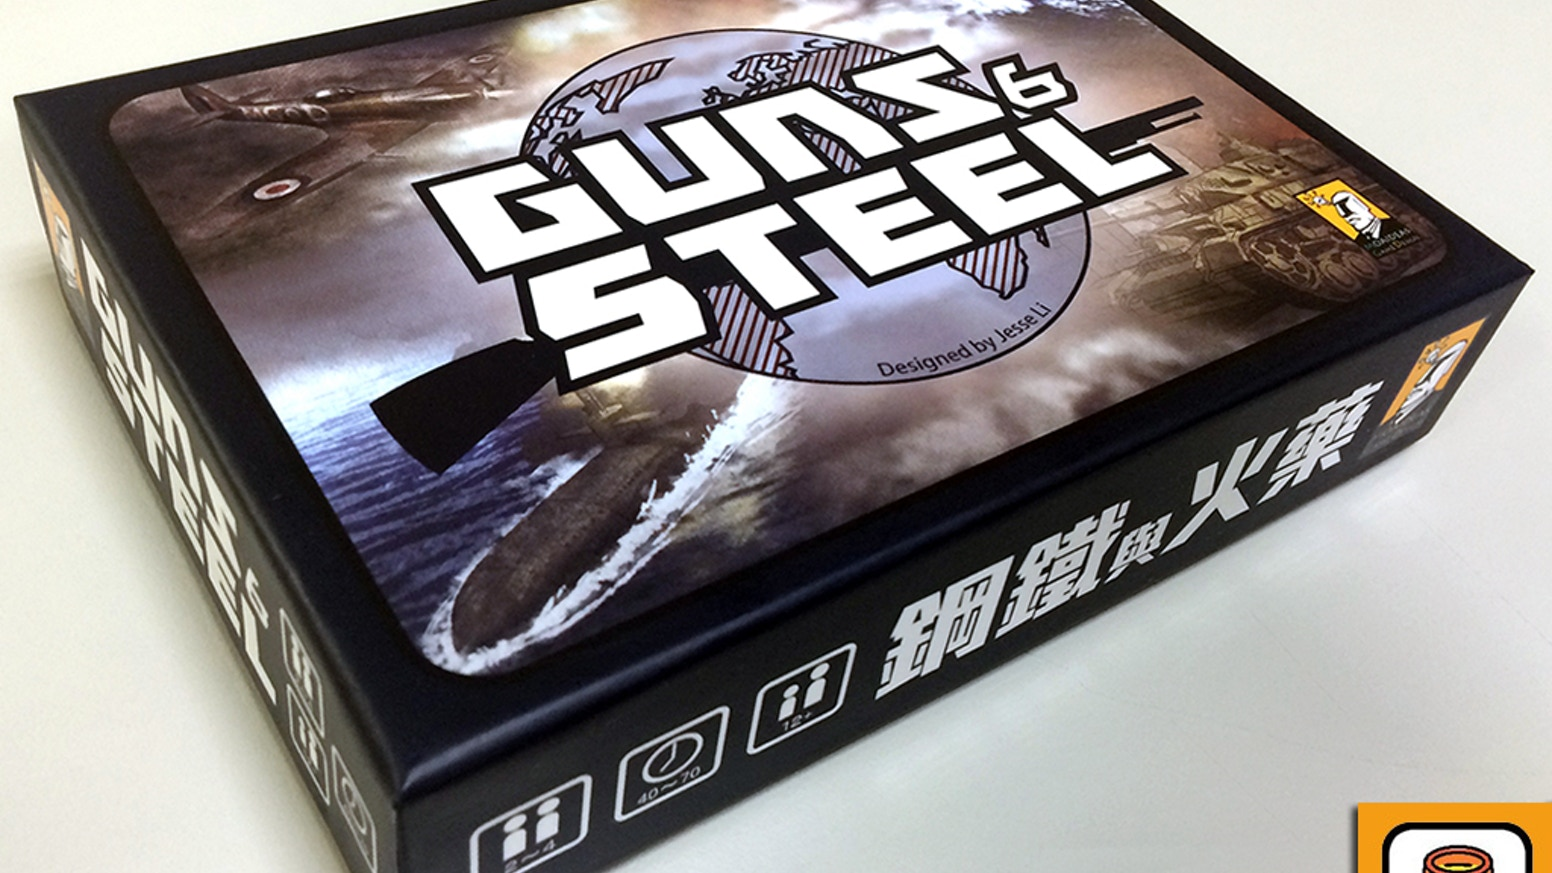 Guns & Steel is a civilisation building card game with unique double-sided cards. Build and defend the greatest empire in the world!